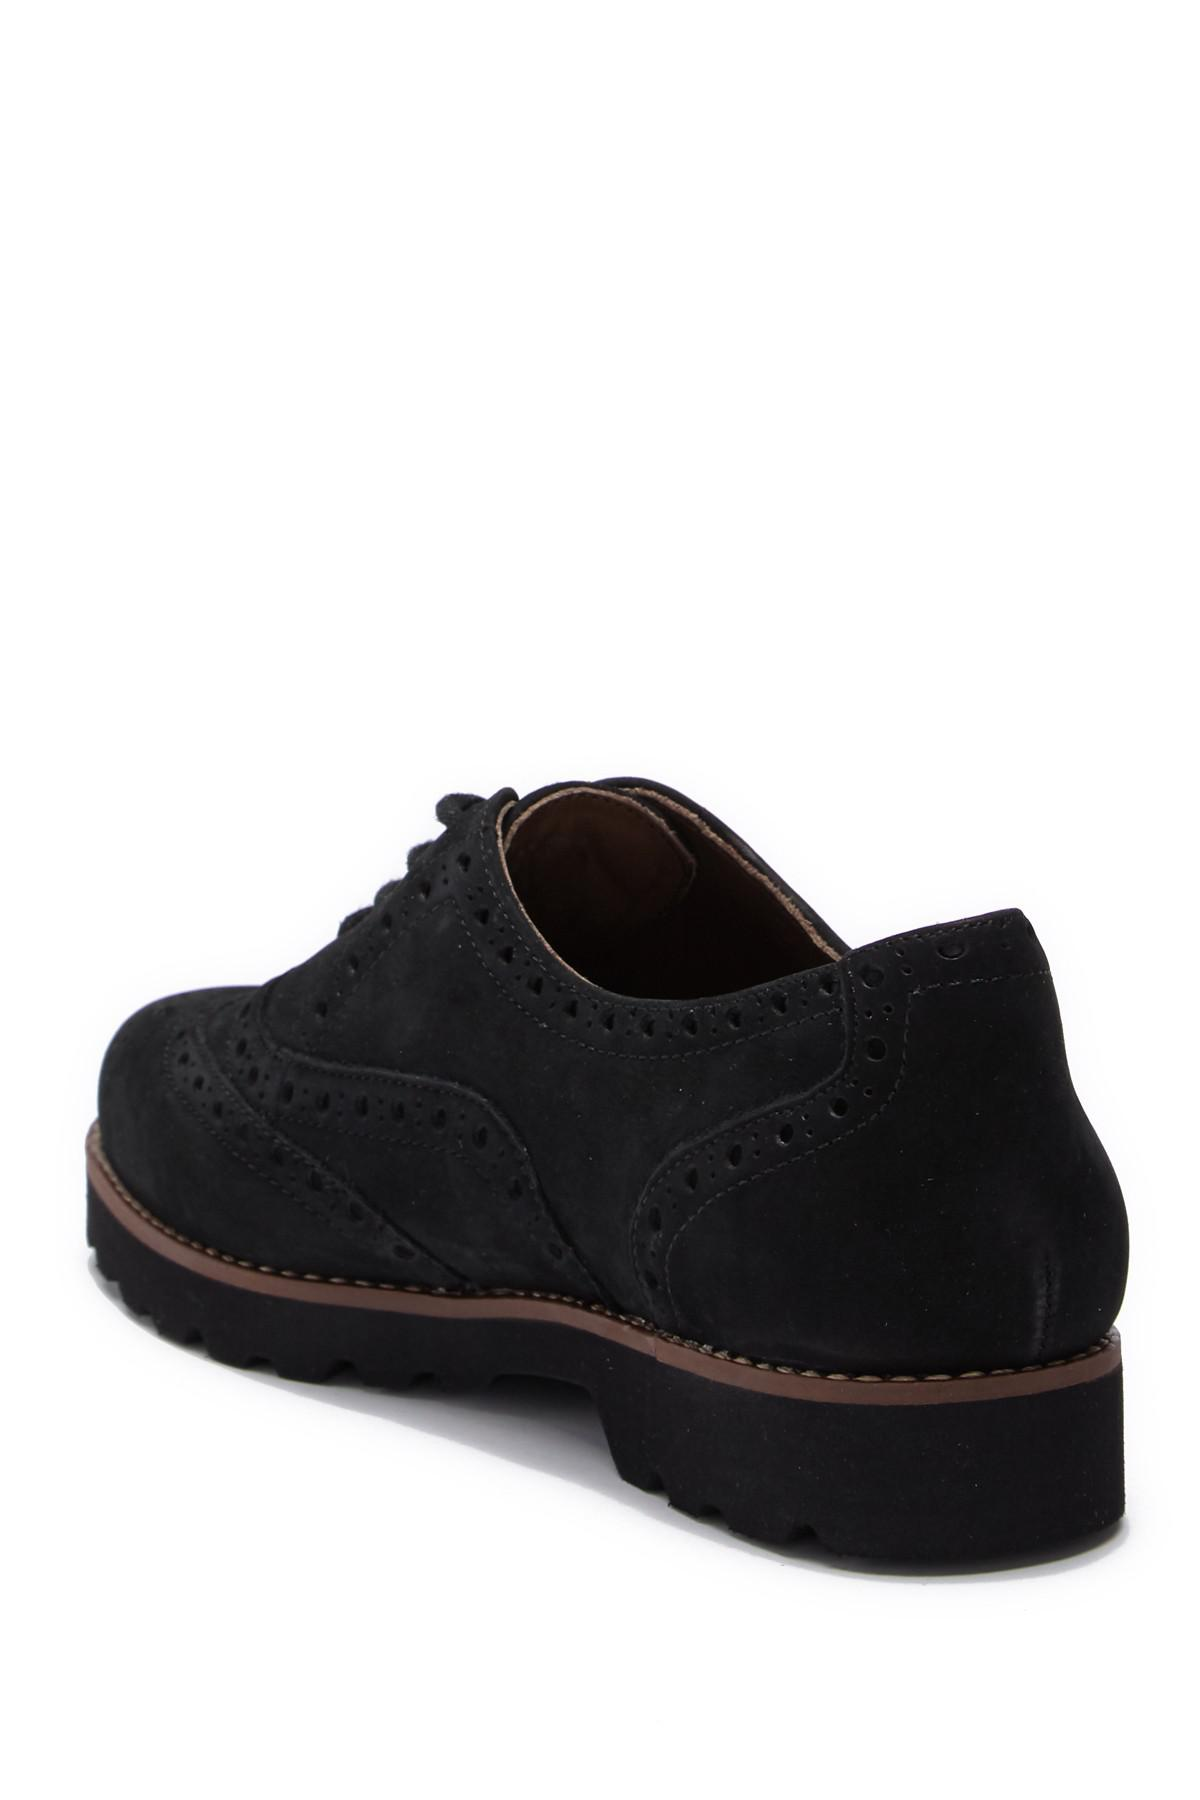 90ad5cd5739 Lyst - Earthies Santana Wingtip Leather Oxford in Black